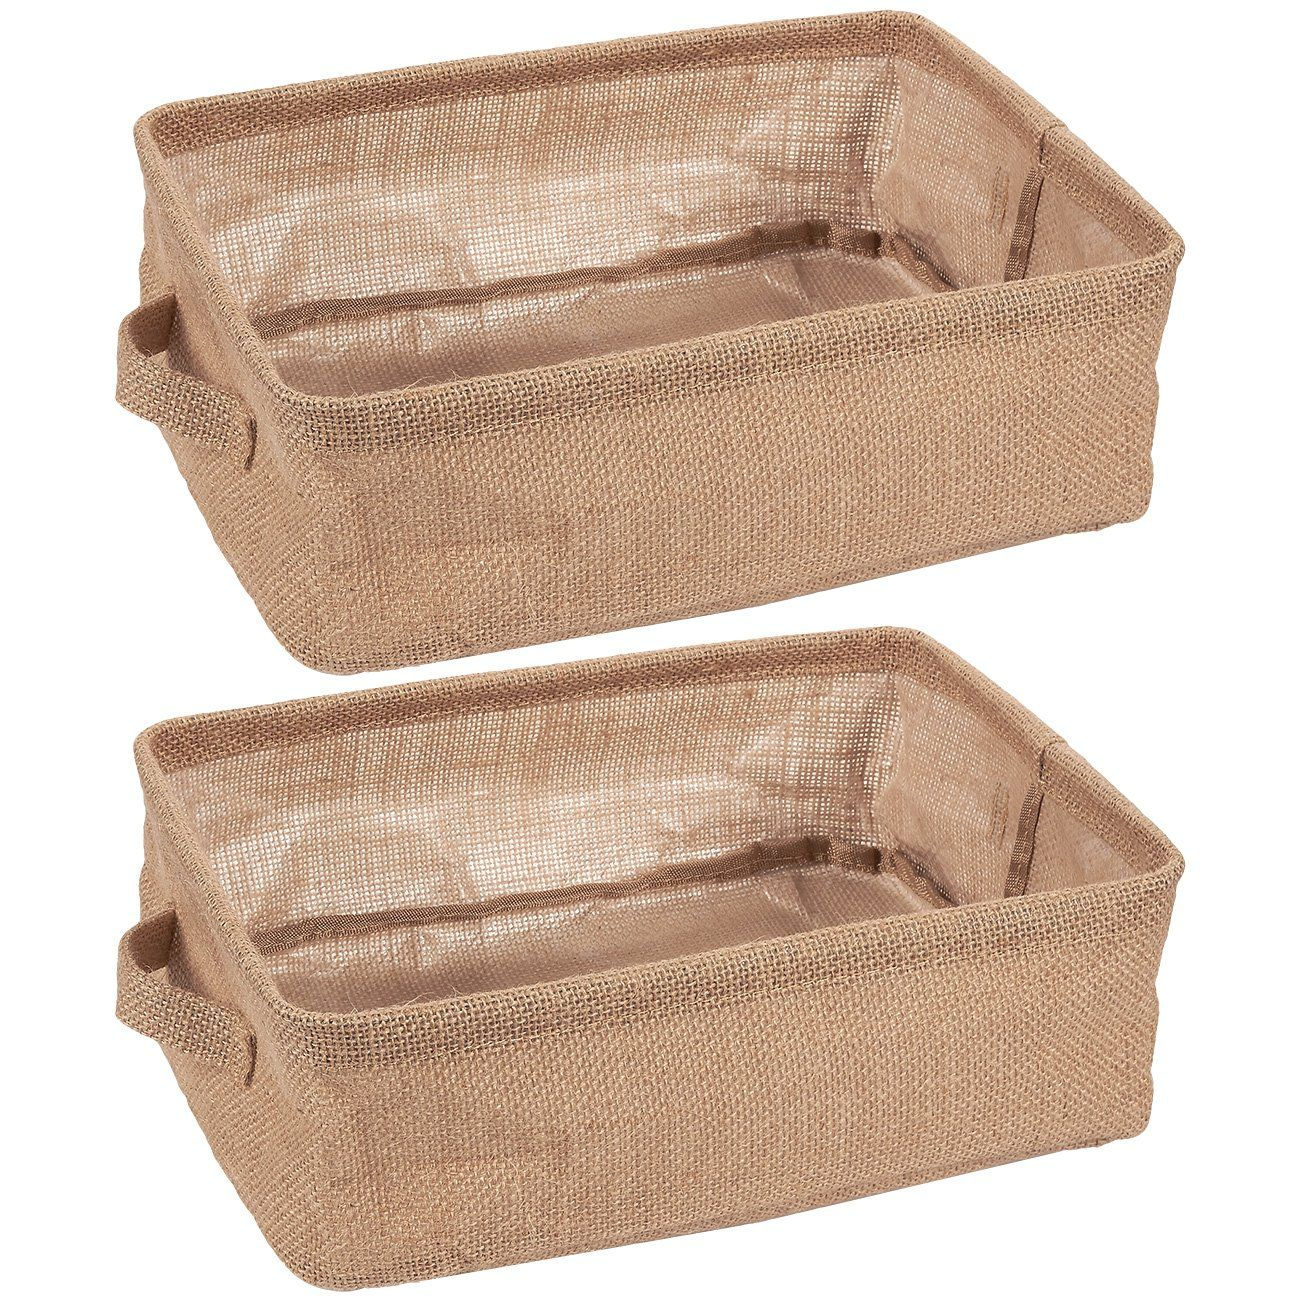 Juvale Collapsible Storage Bin Basket 2 Pack Fabric Linen Cloth Storage Basket With Handles Perfect For Underbed Magazine Shelves Closet Magazine Sto